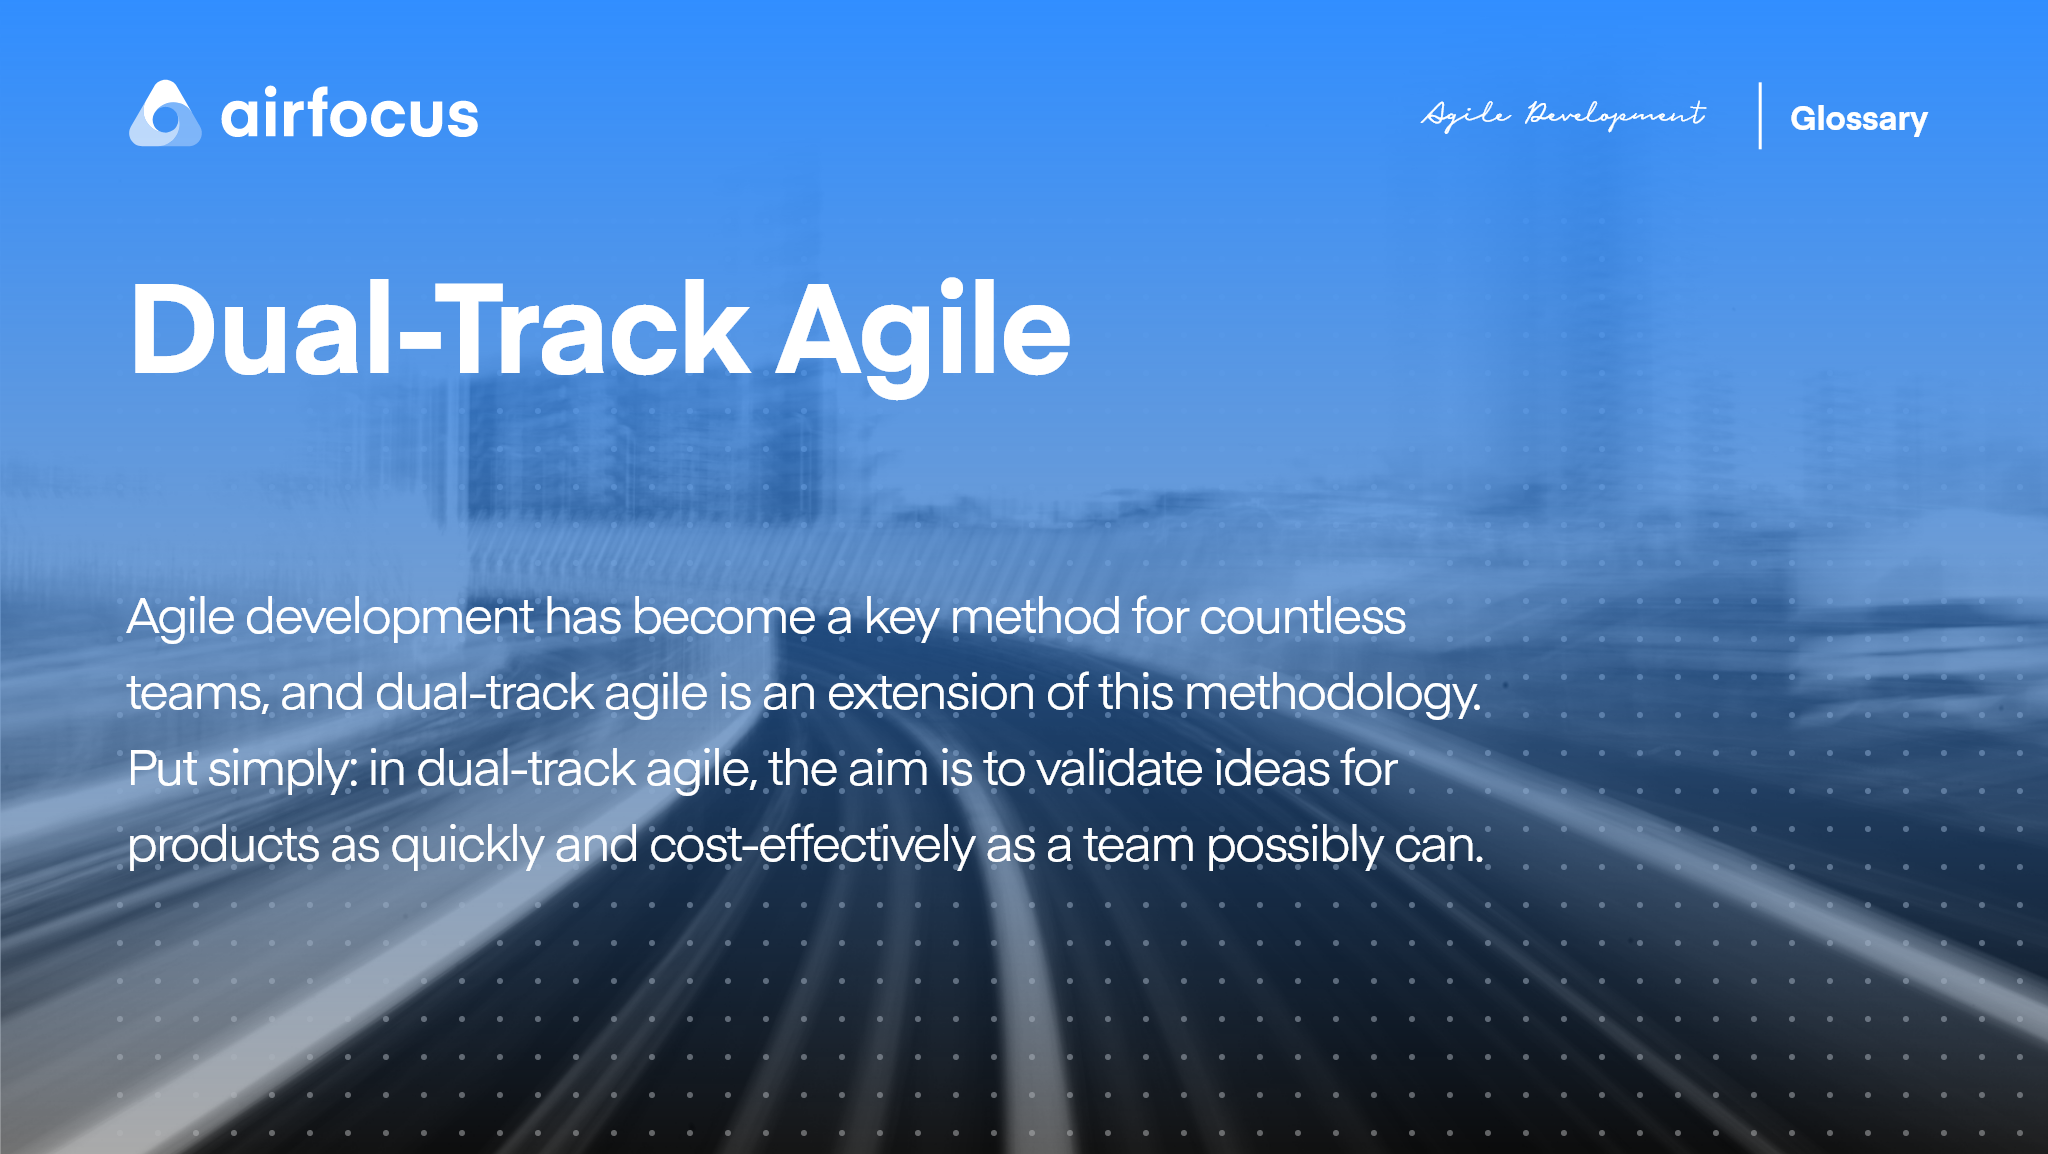 What Is Dual-track Agile